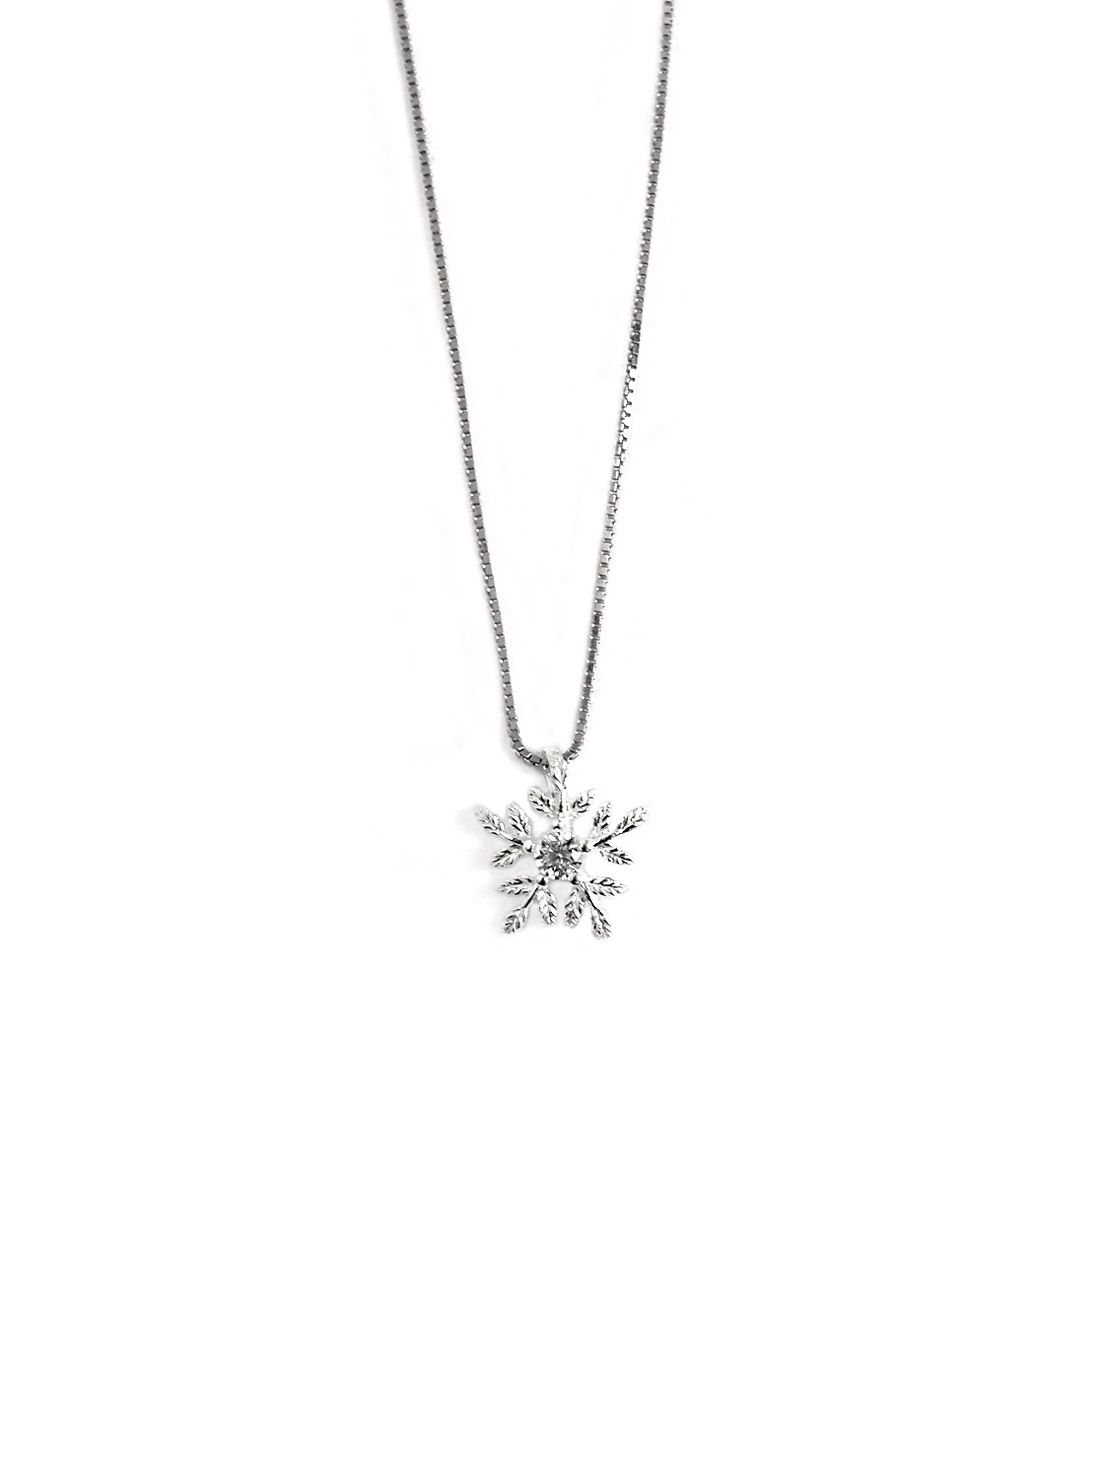 made with swarovski crystal crystals pendant from snowflake